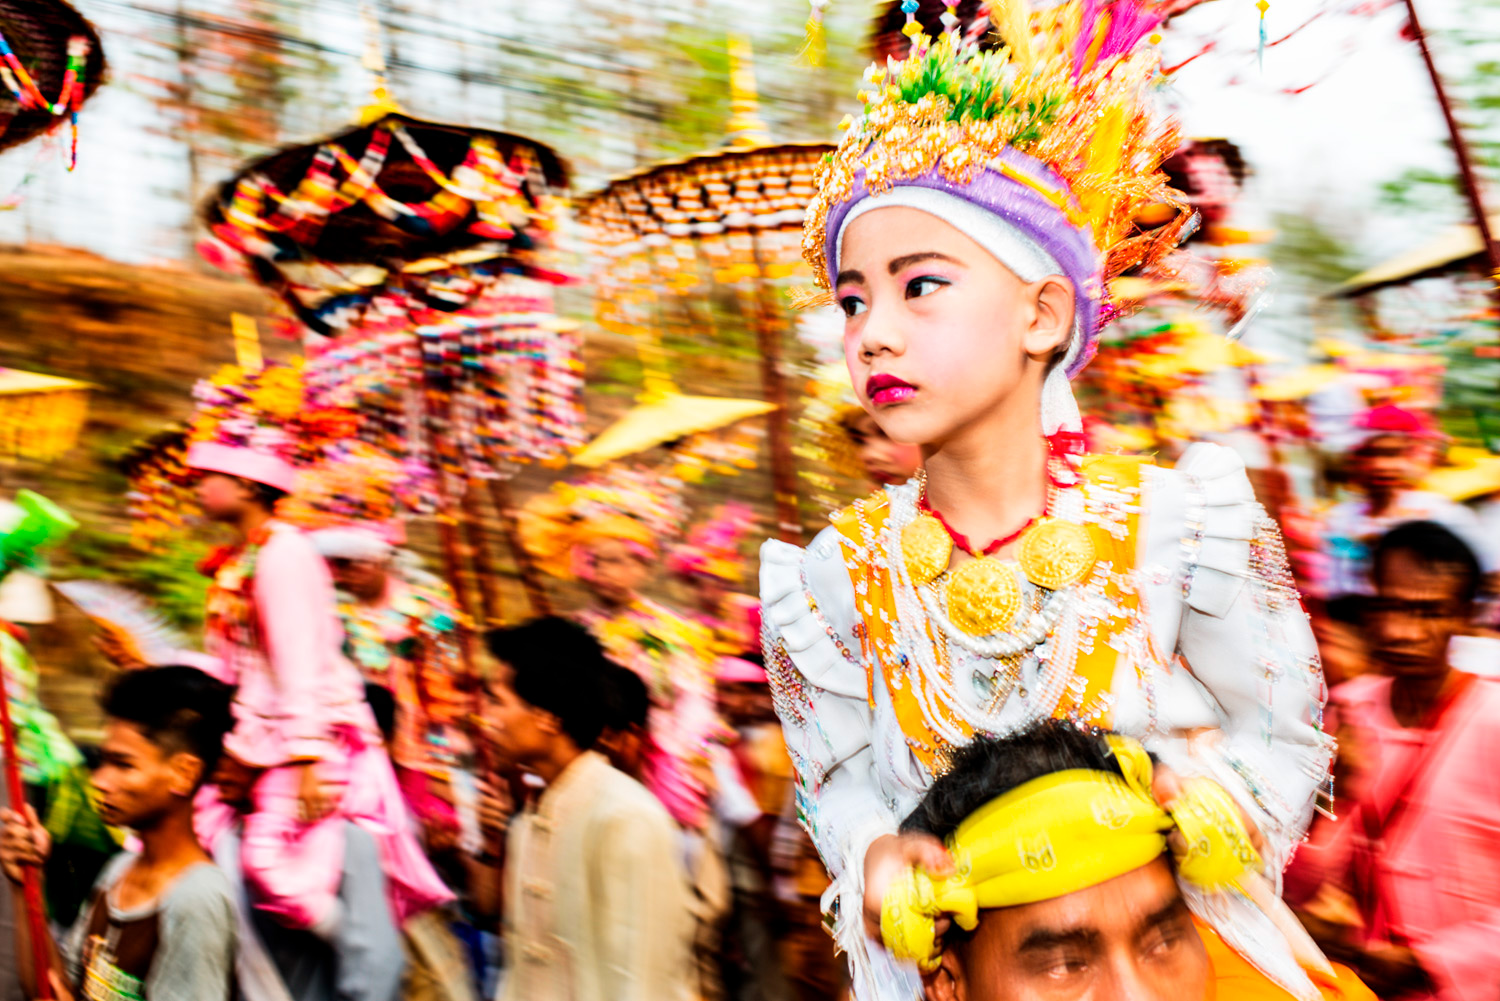 Poi Sang Long Festival - Is Being Shy a Good Reason to Take Candid Photos